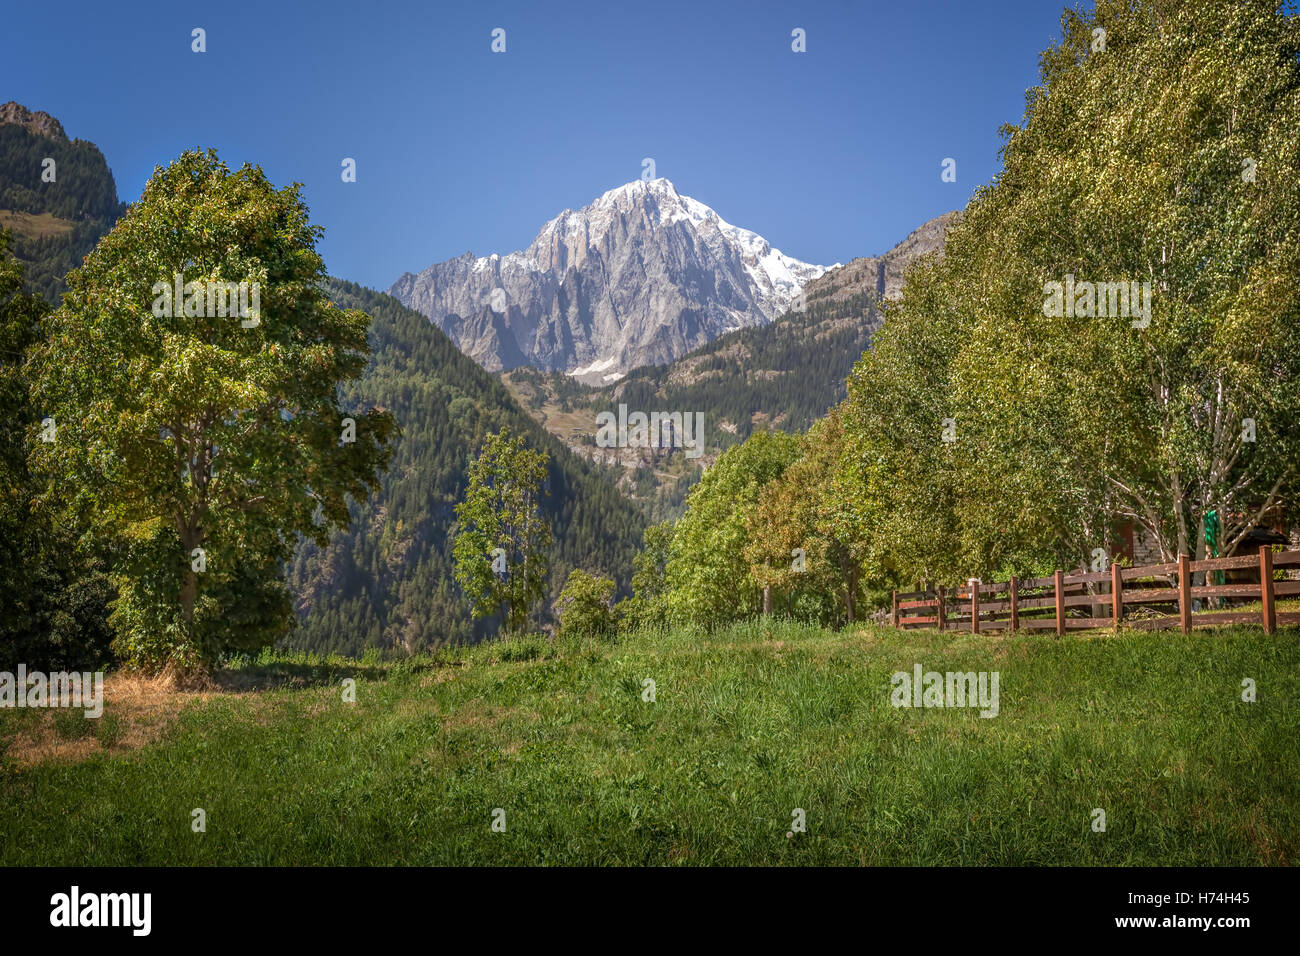 Monte Bianco or Mont Blanc: summit seen from Courmayeur,  Aosta Valley, Italian Alps - Stock Image